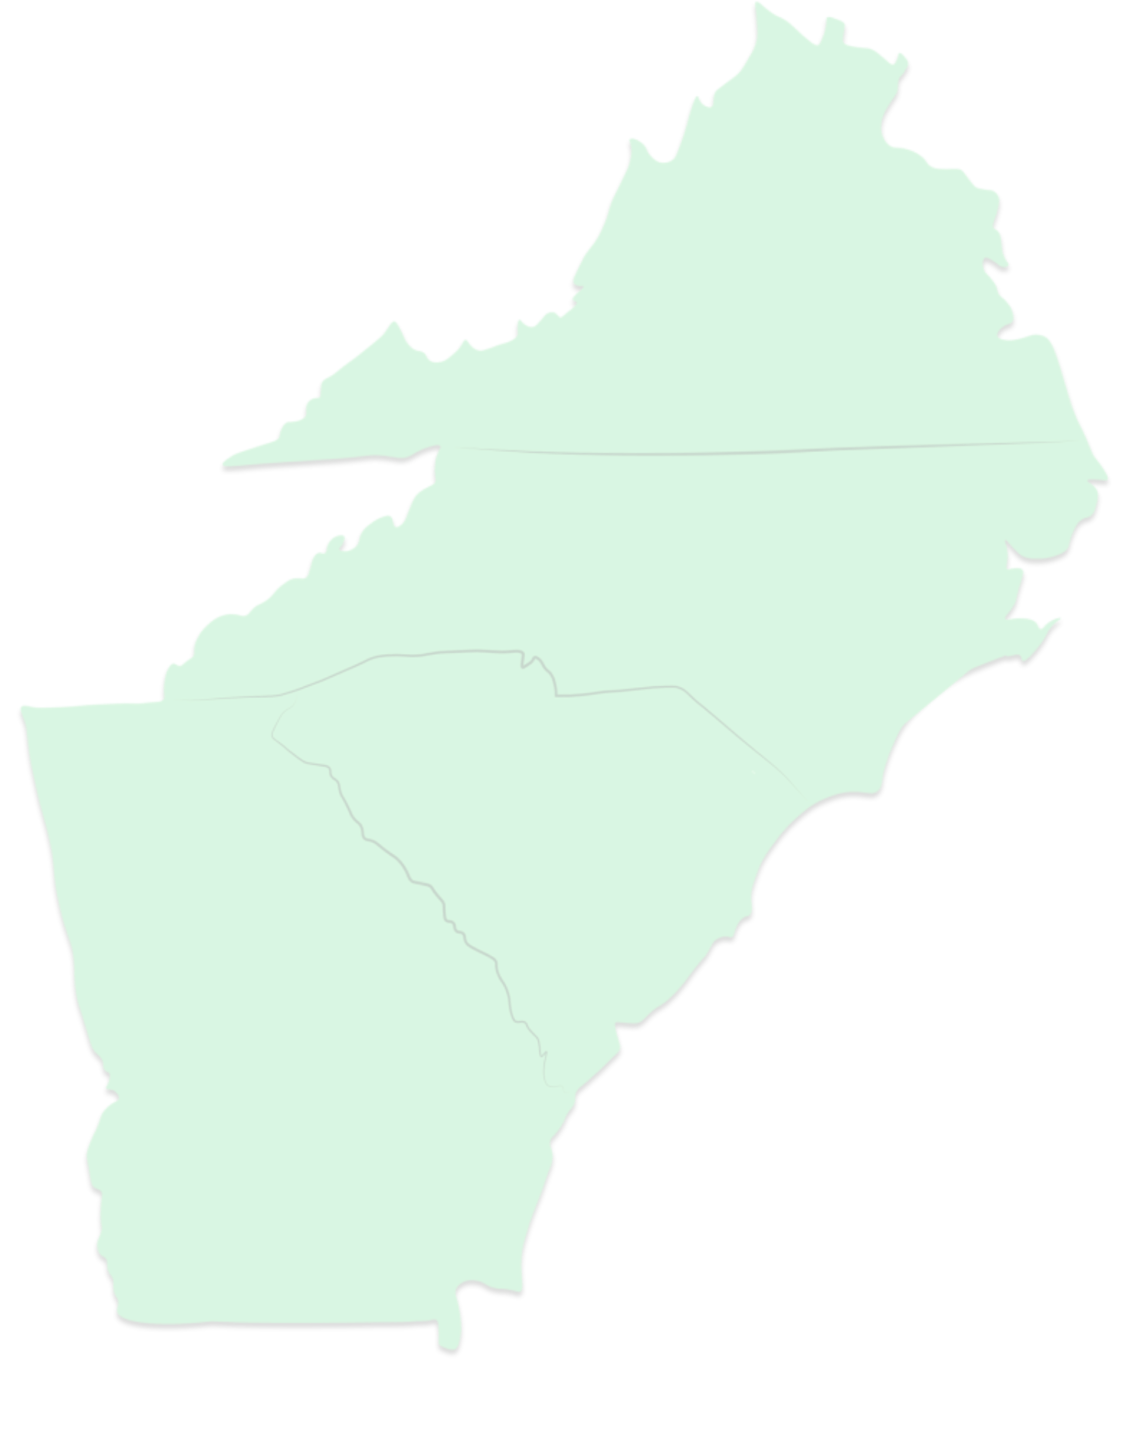 Graphic map of the James C. Greene coverage territory. Includes the states of Virginia, North Carolina, South Carolina and Georgia.